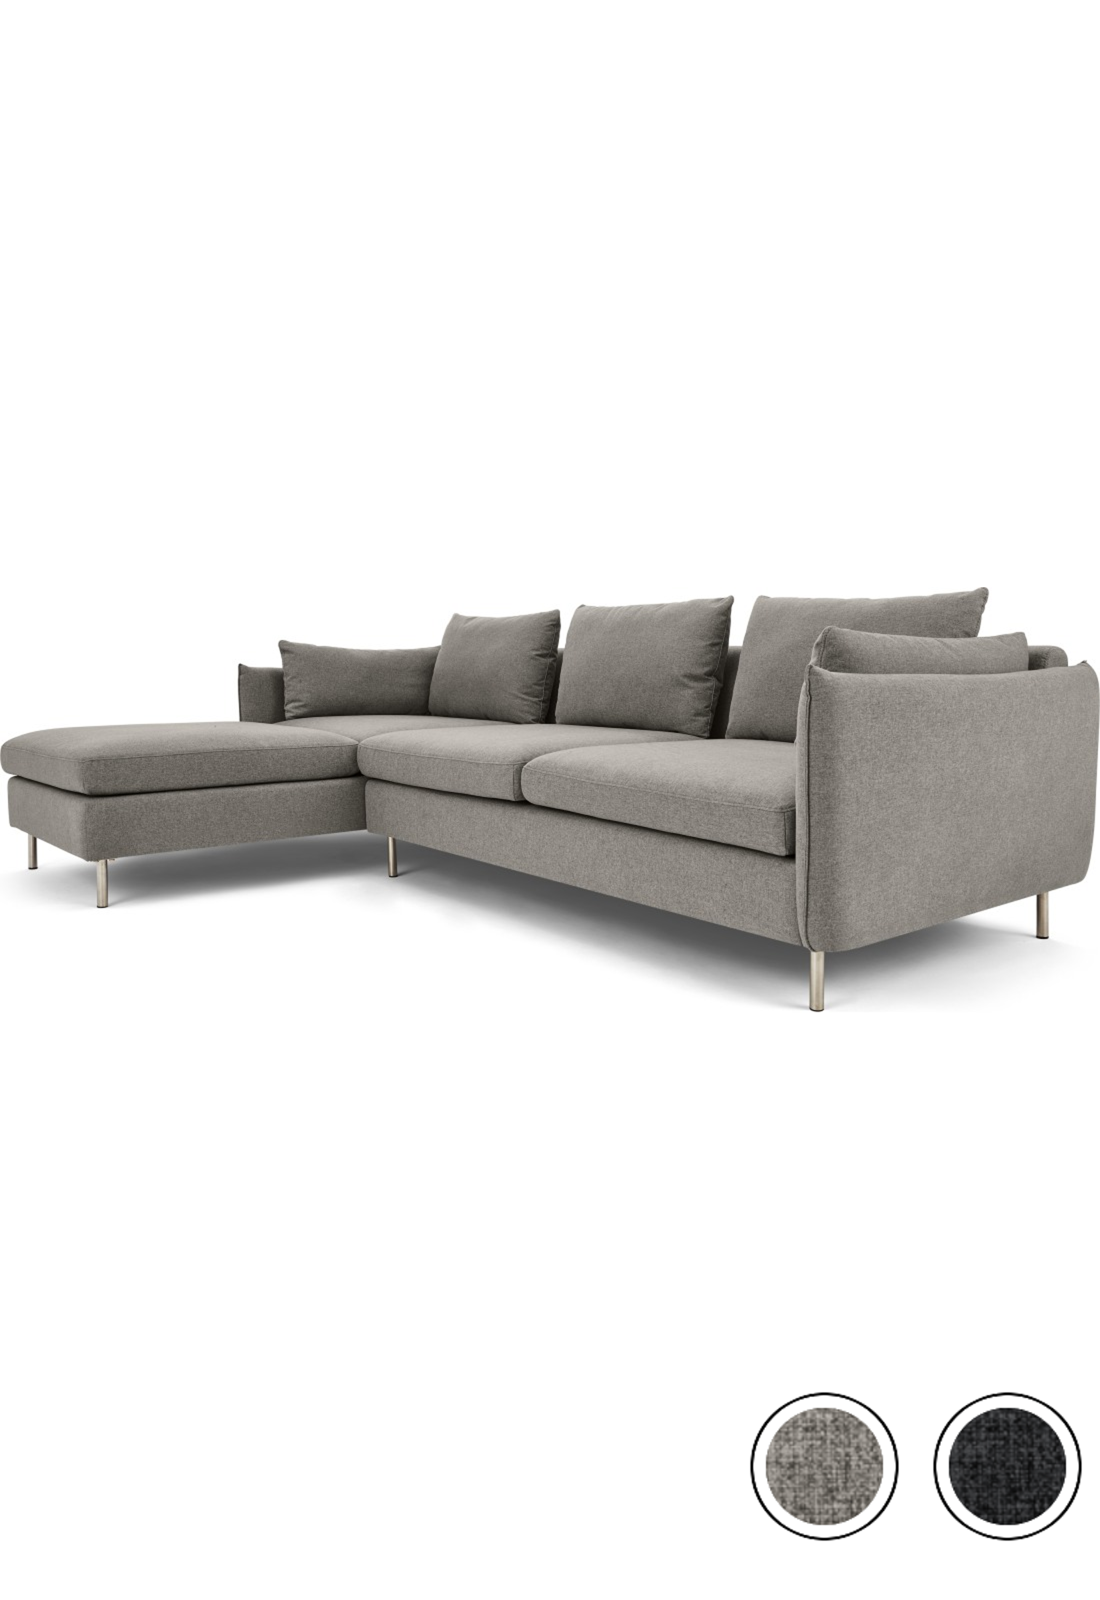 Made Manhattan Grey Chaise Longue Corner Sofa Sofa 3 Seater Sofa